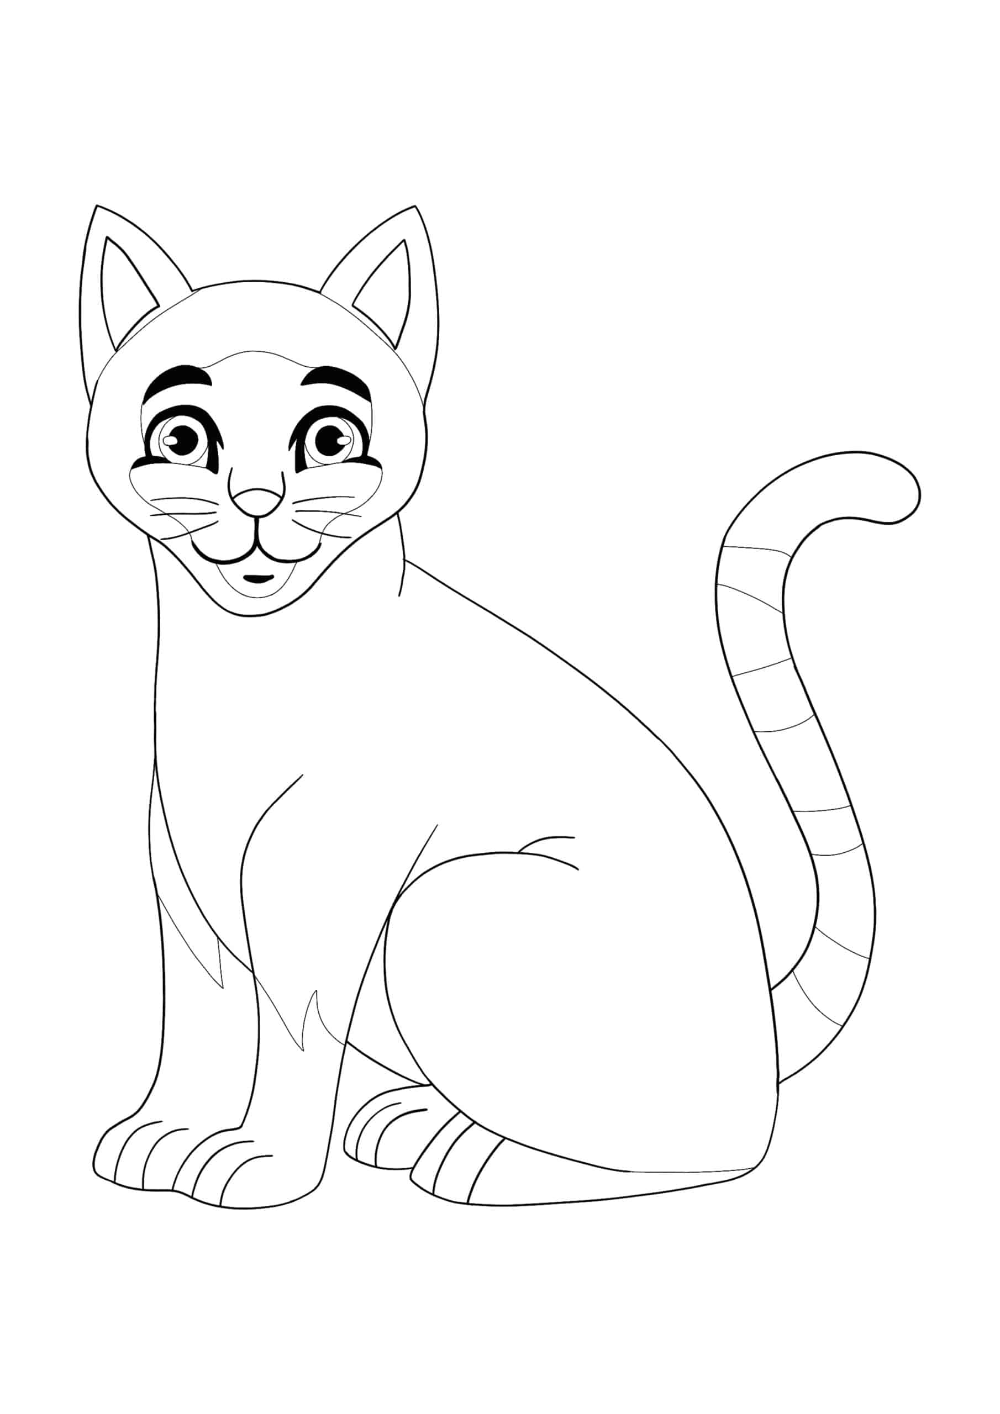 Siamese Cat Coloring Pages 2 Free Coloring Sheets 2020 Cat Coloring Page Coloring Pages Free Coloring Sheets